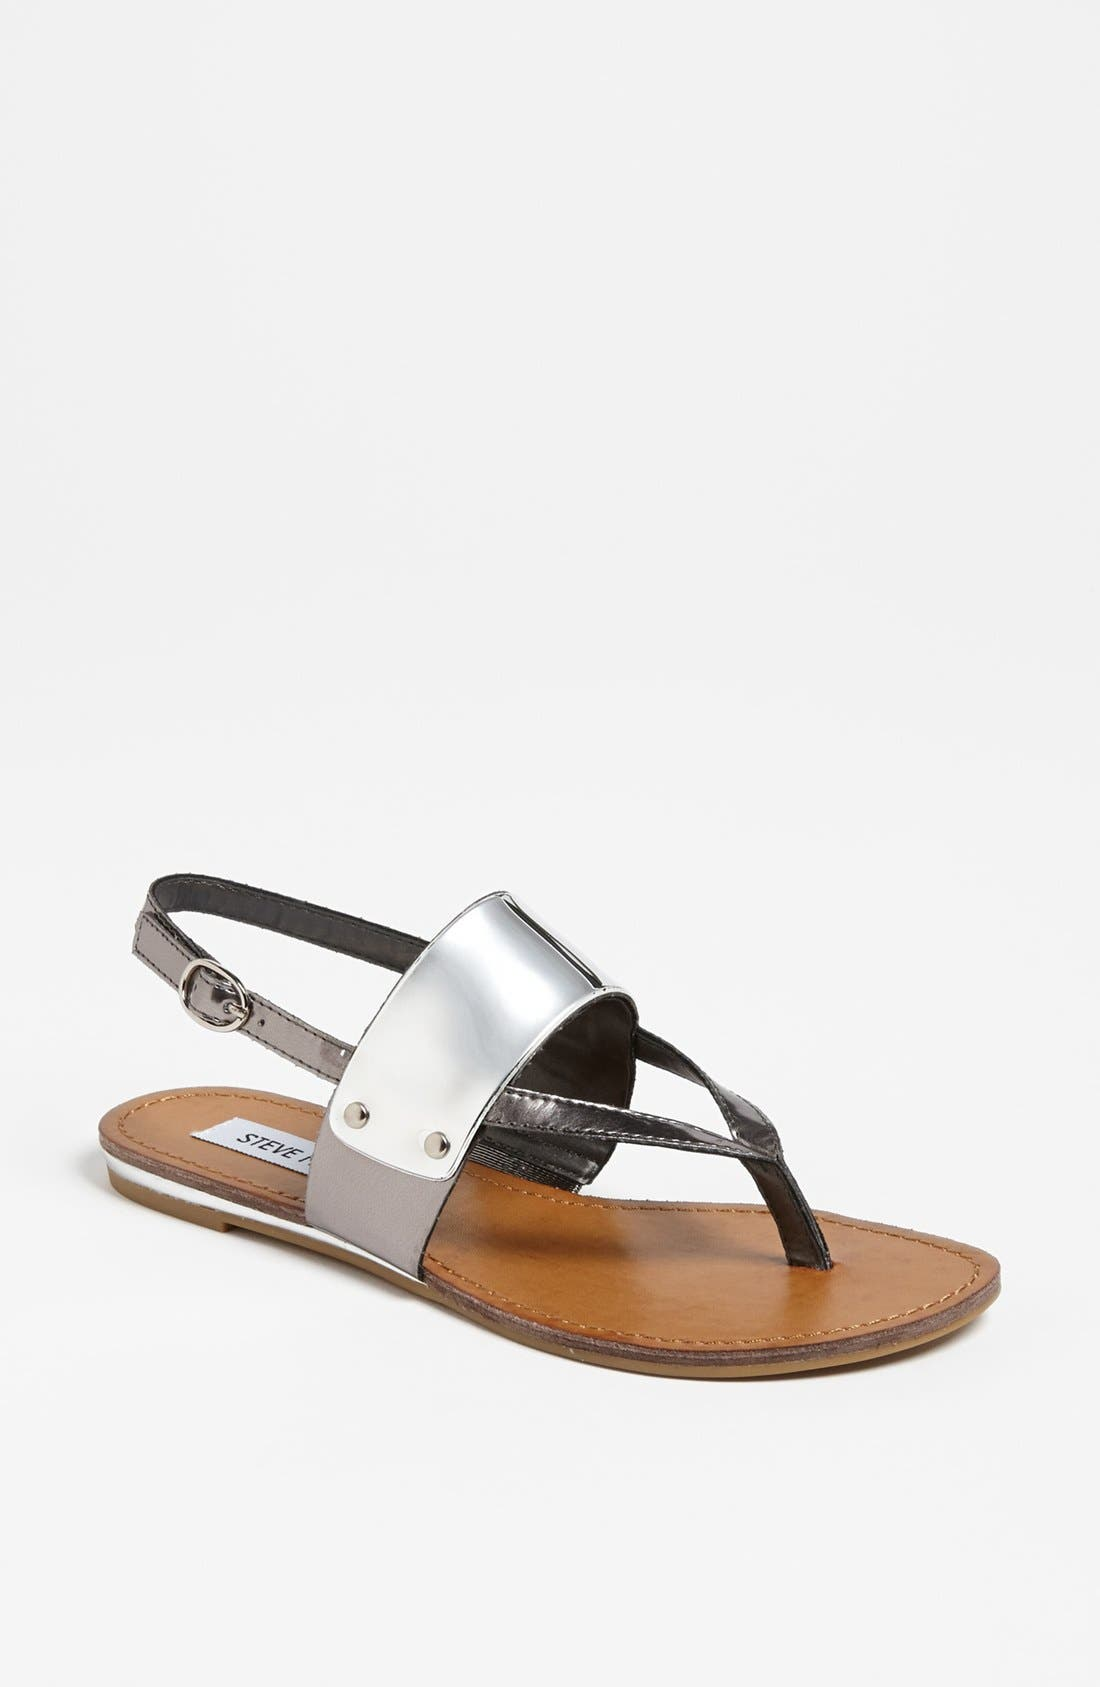 Alternate Image 1 Selected - Steve Madden 'Cufff' Sandal